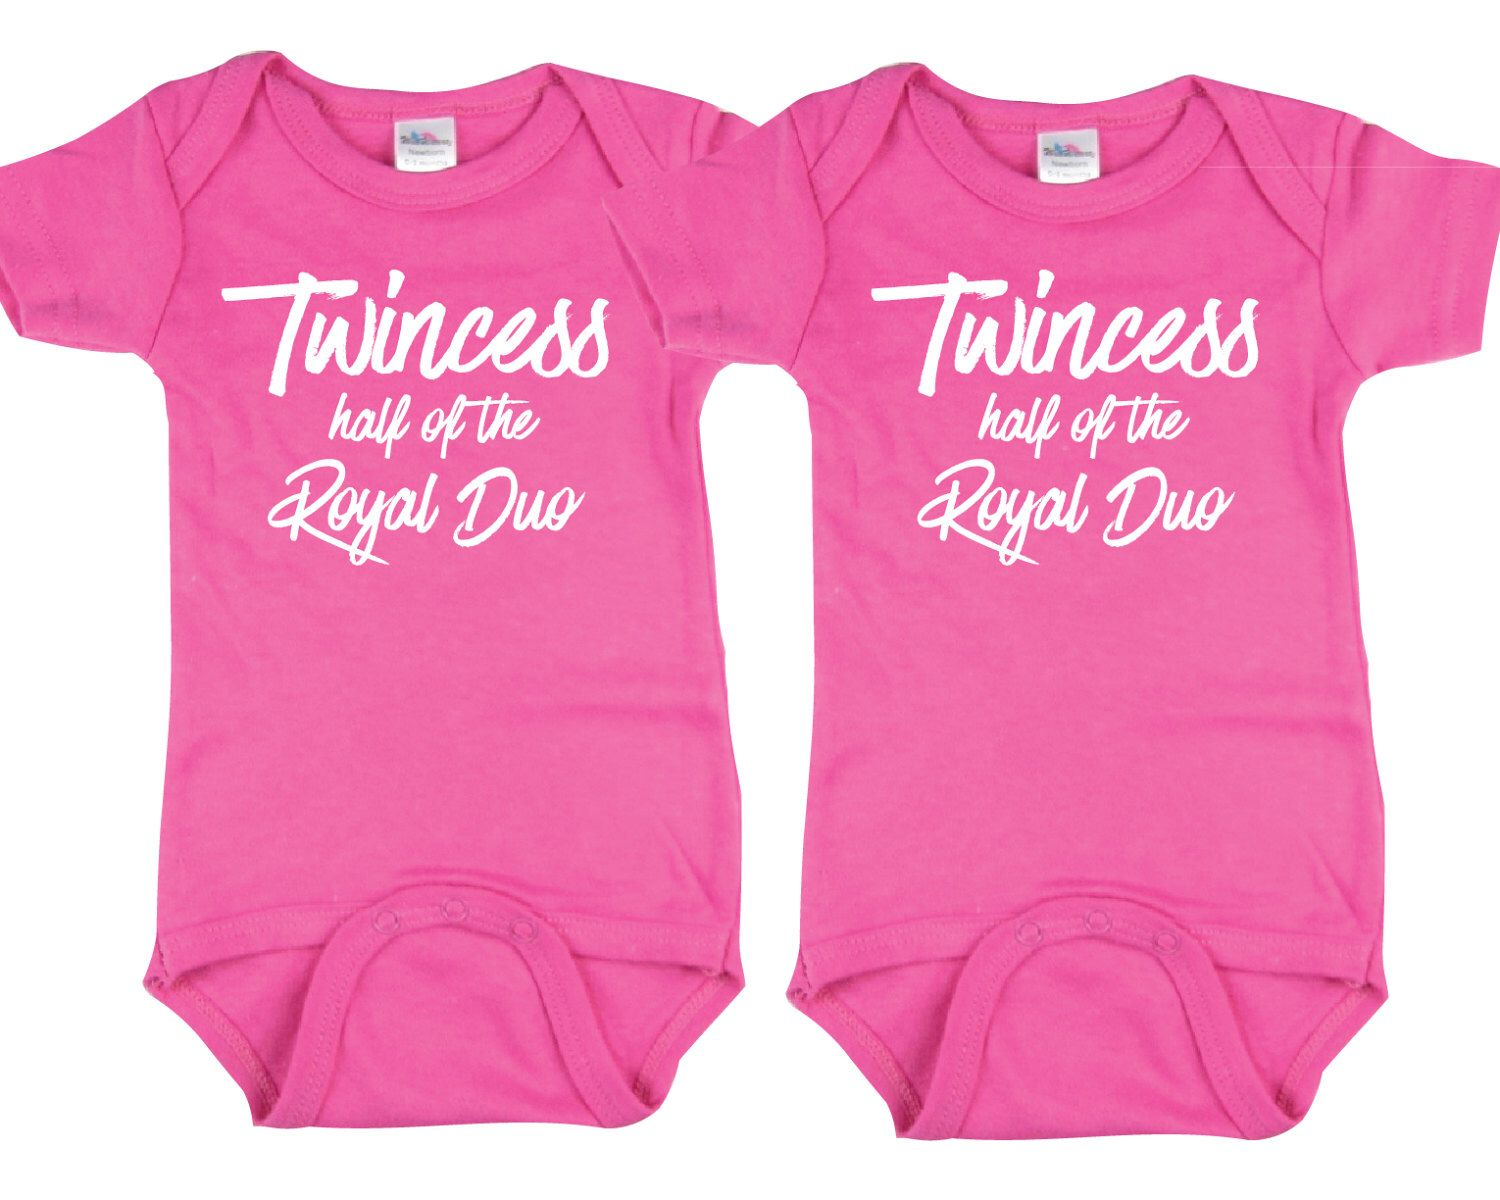 Unisex Infant Twins Baby Casual Bodysuit Clothes Cute Matching Outfits Gift Kids